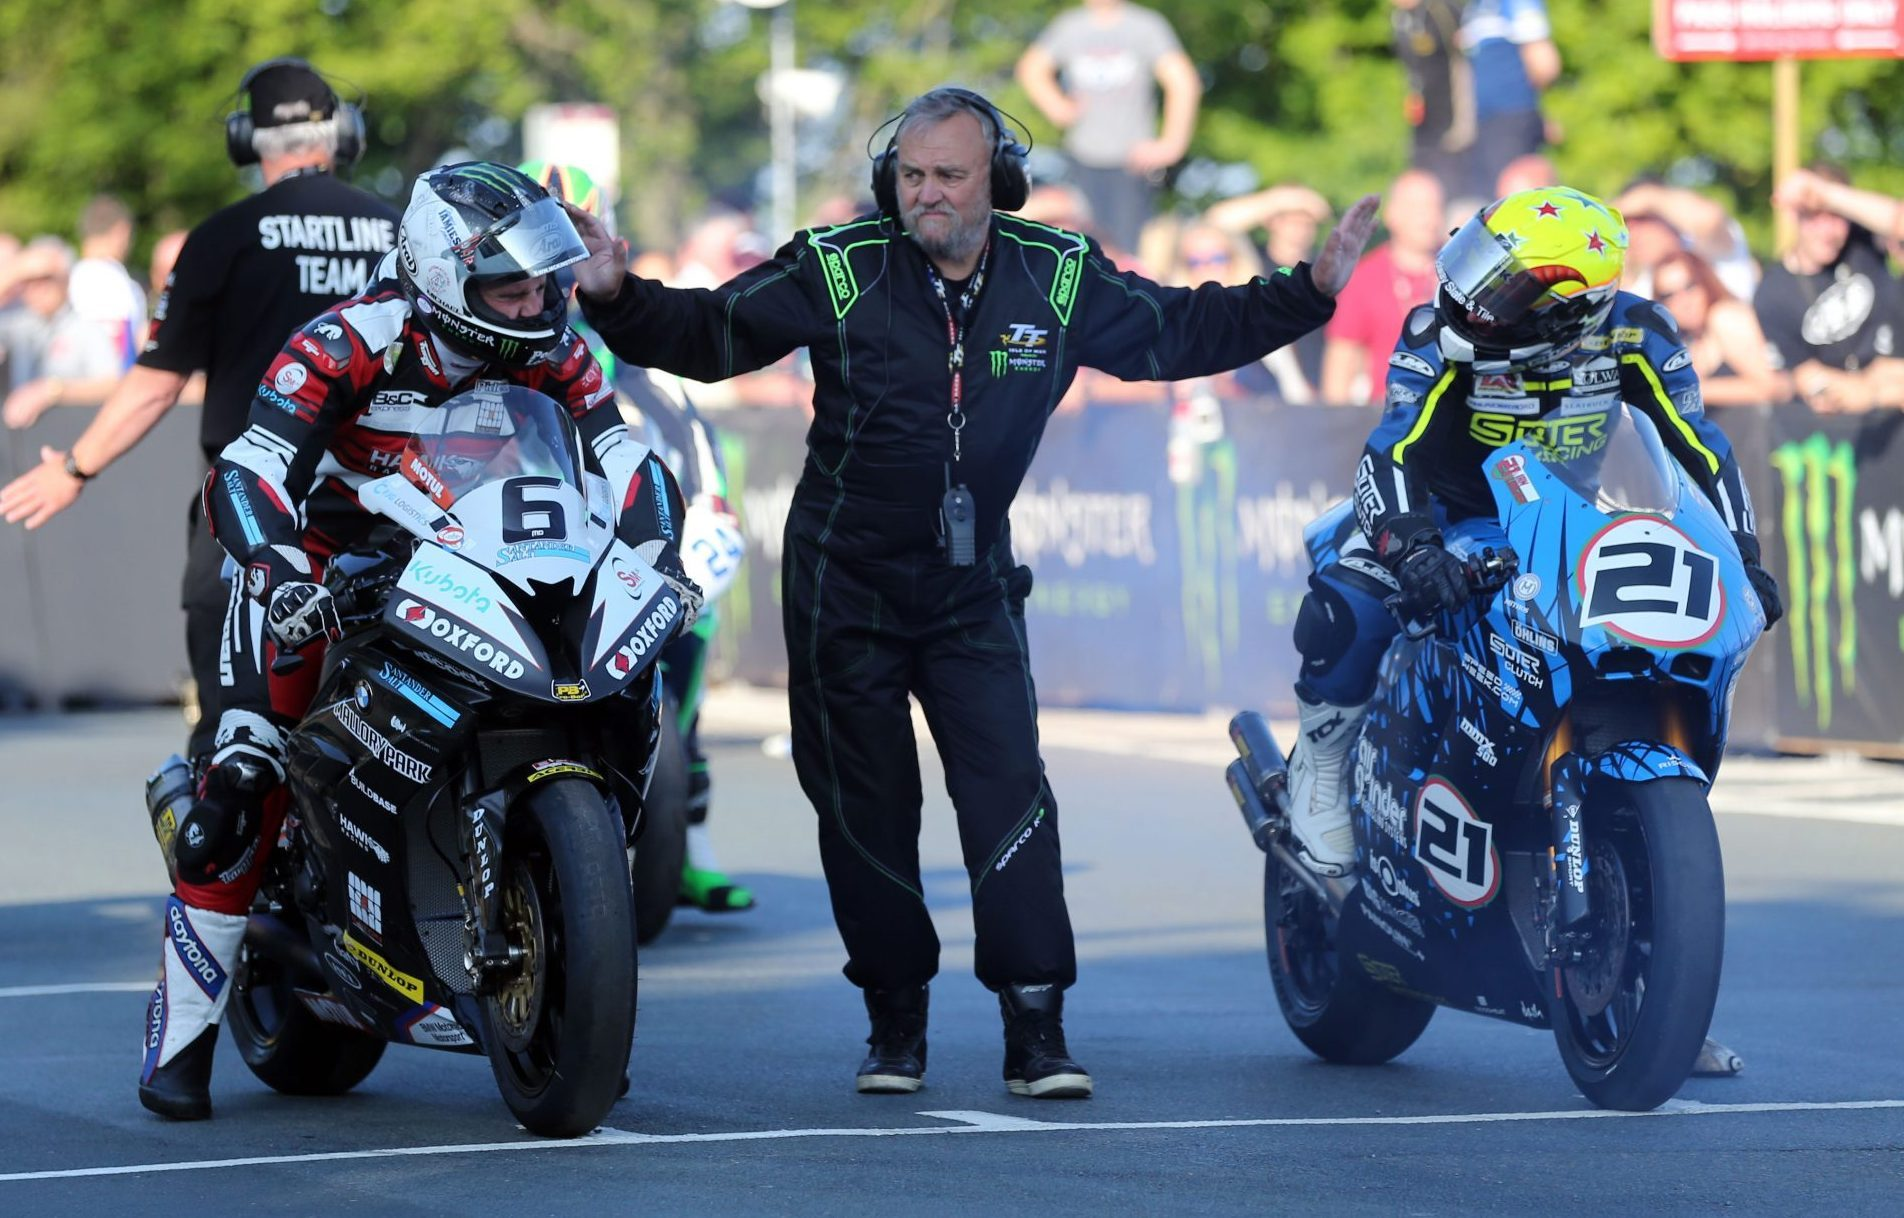 suter_mmx500_ian_lougher_video_lap_tt_isla_de_man_500cc_2t